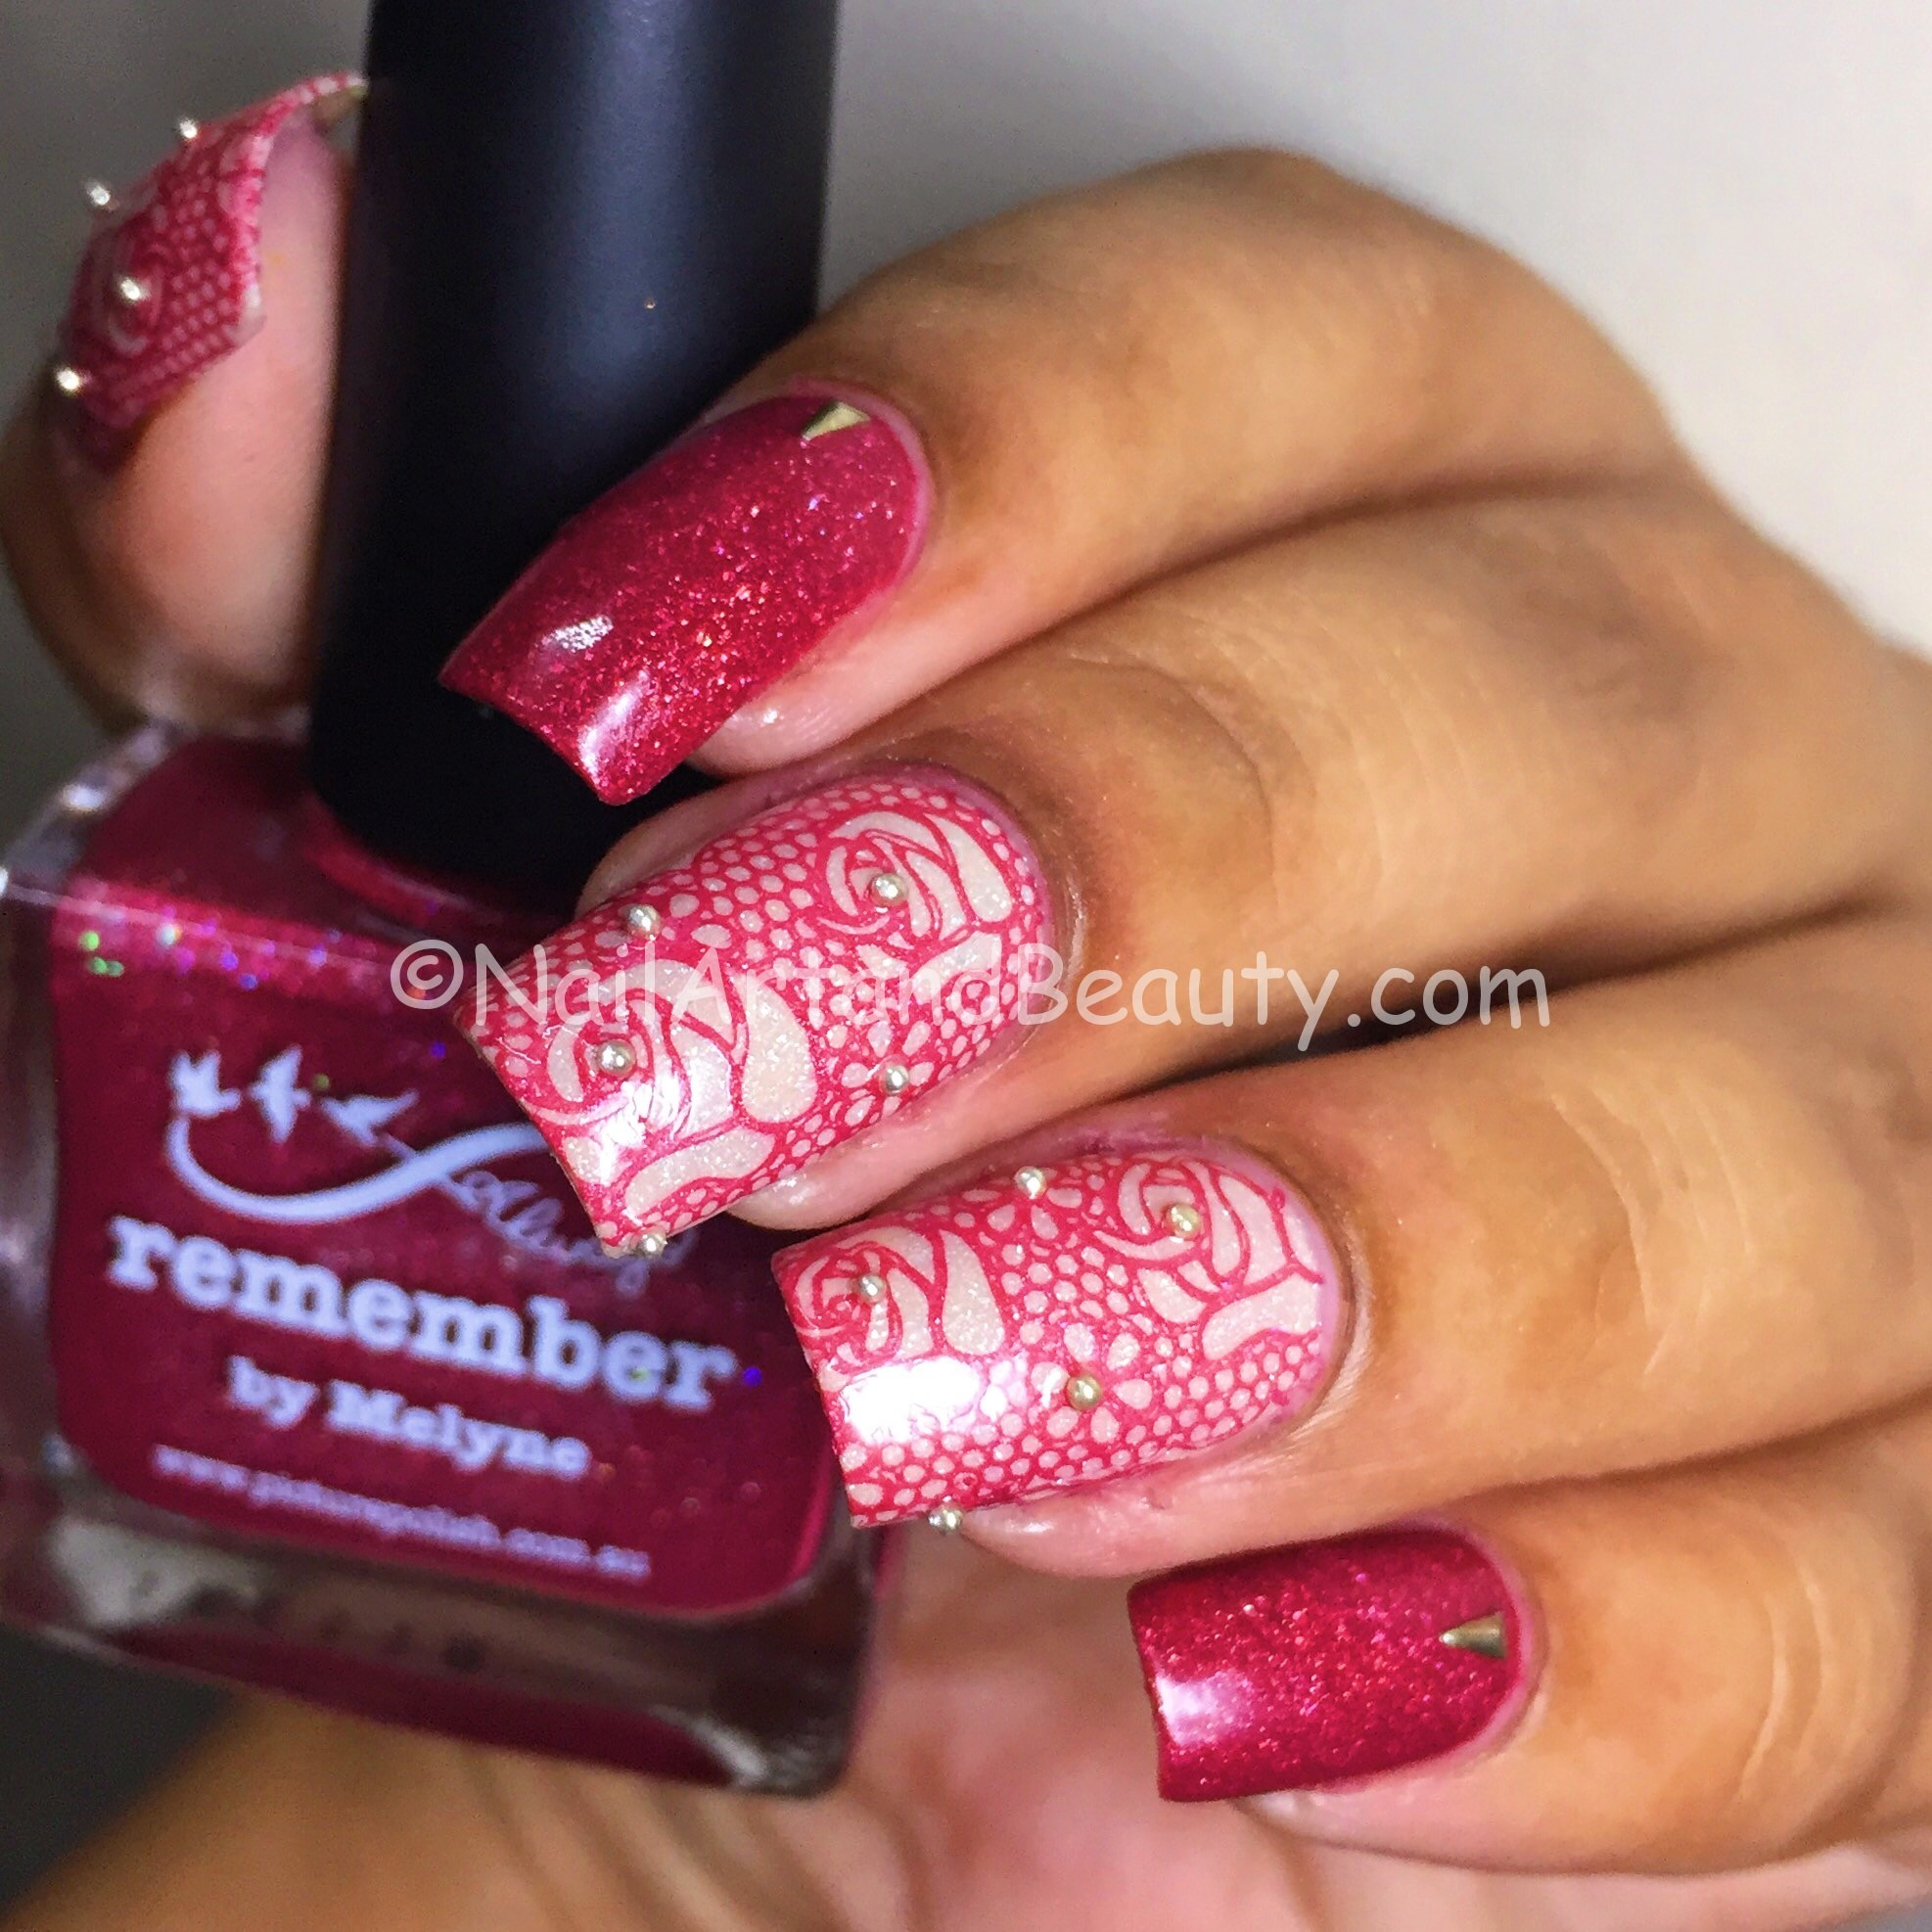 Lace Nails with Picture Polish Merge and Remember